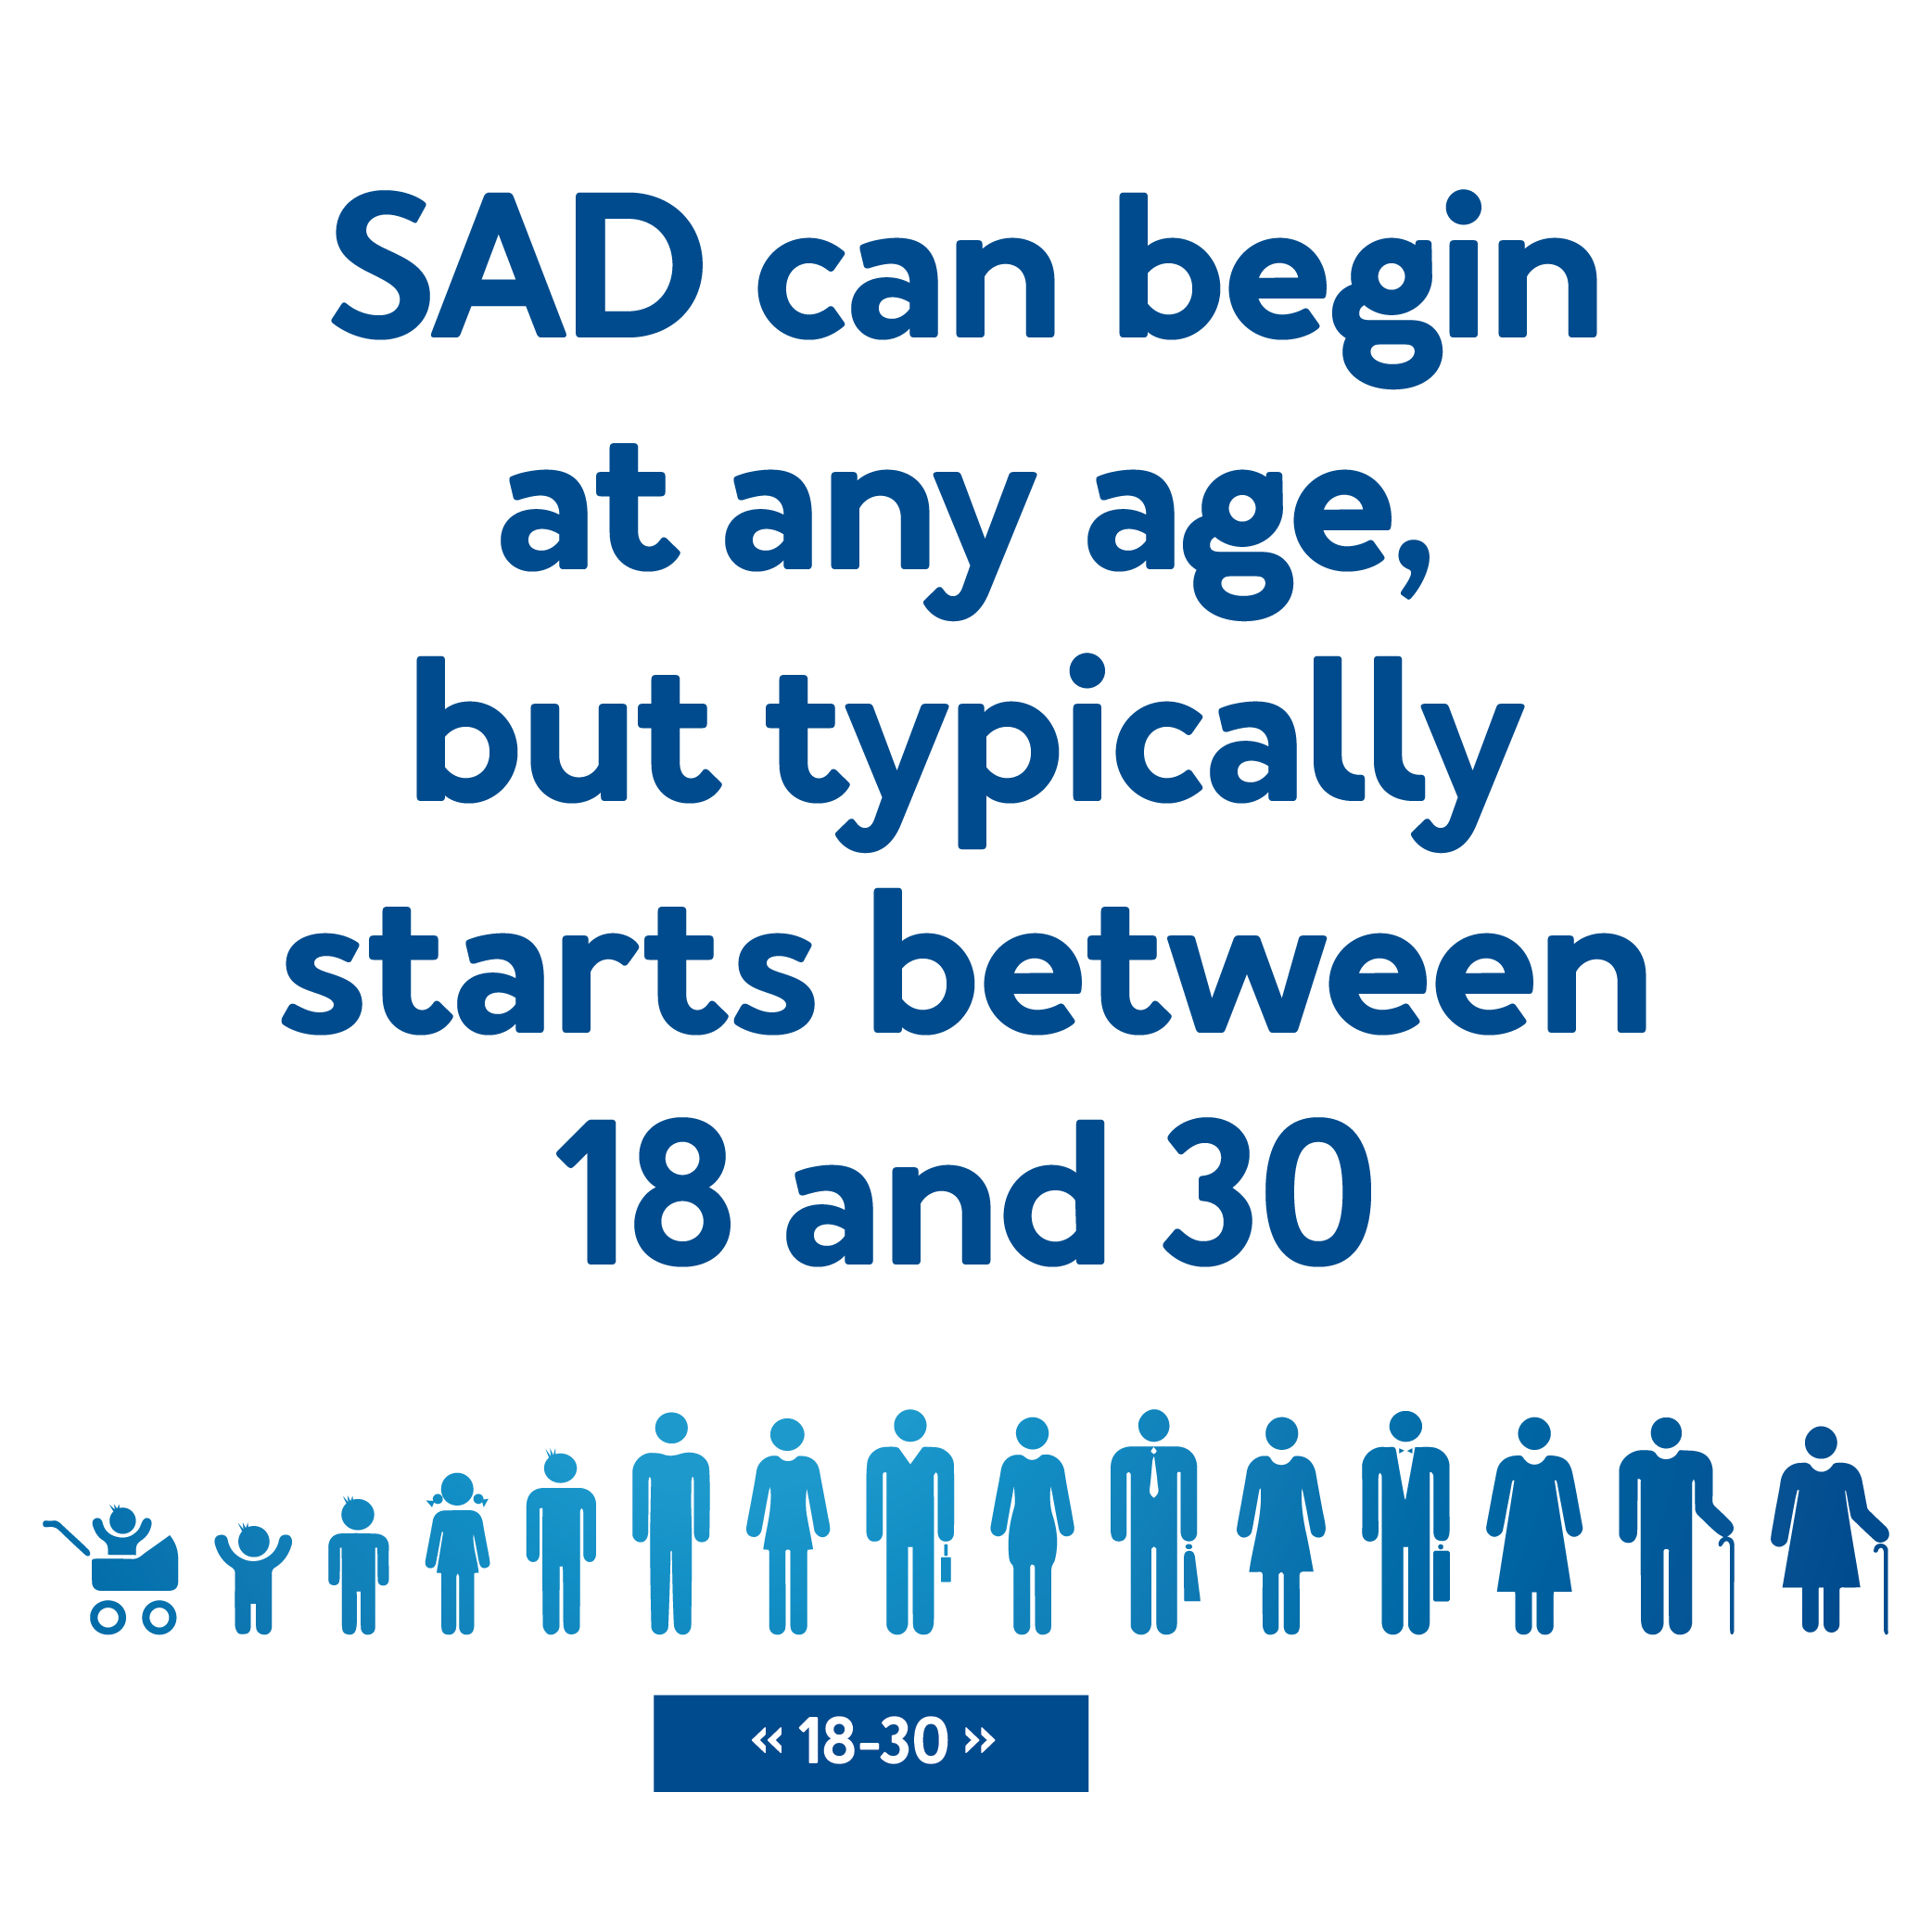 SAD can begin at any age but typically starts with those between 18 and 30 your chances of SAD go down as you age.